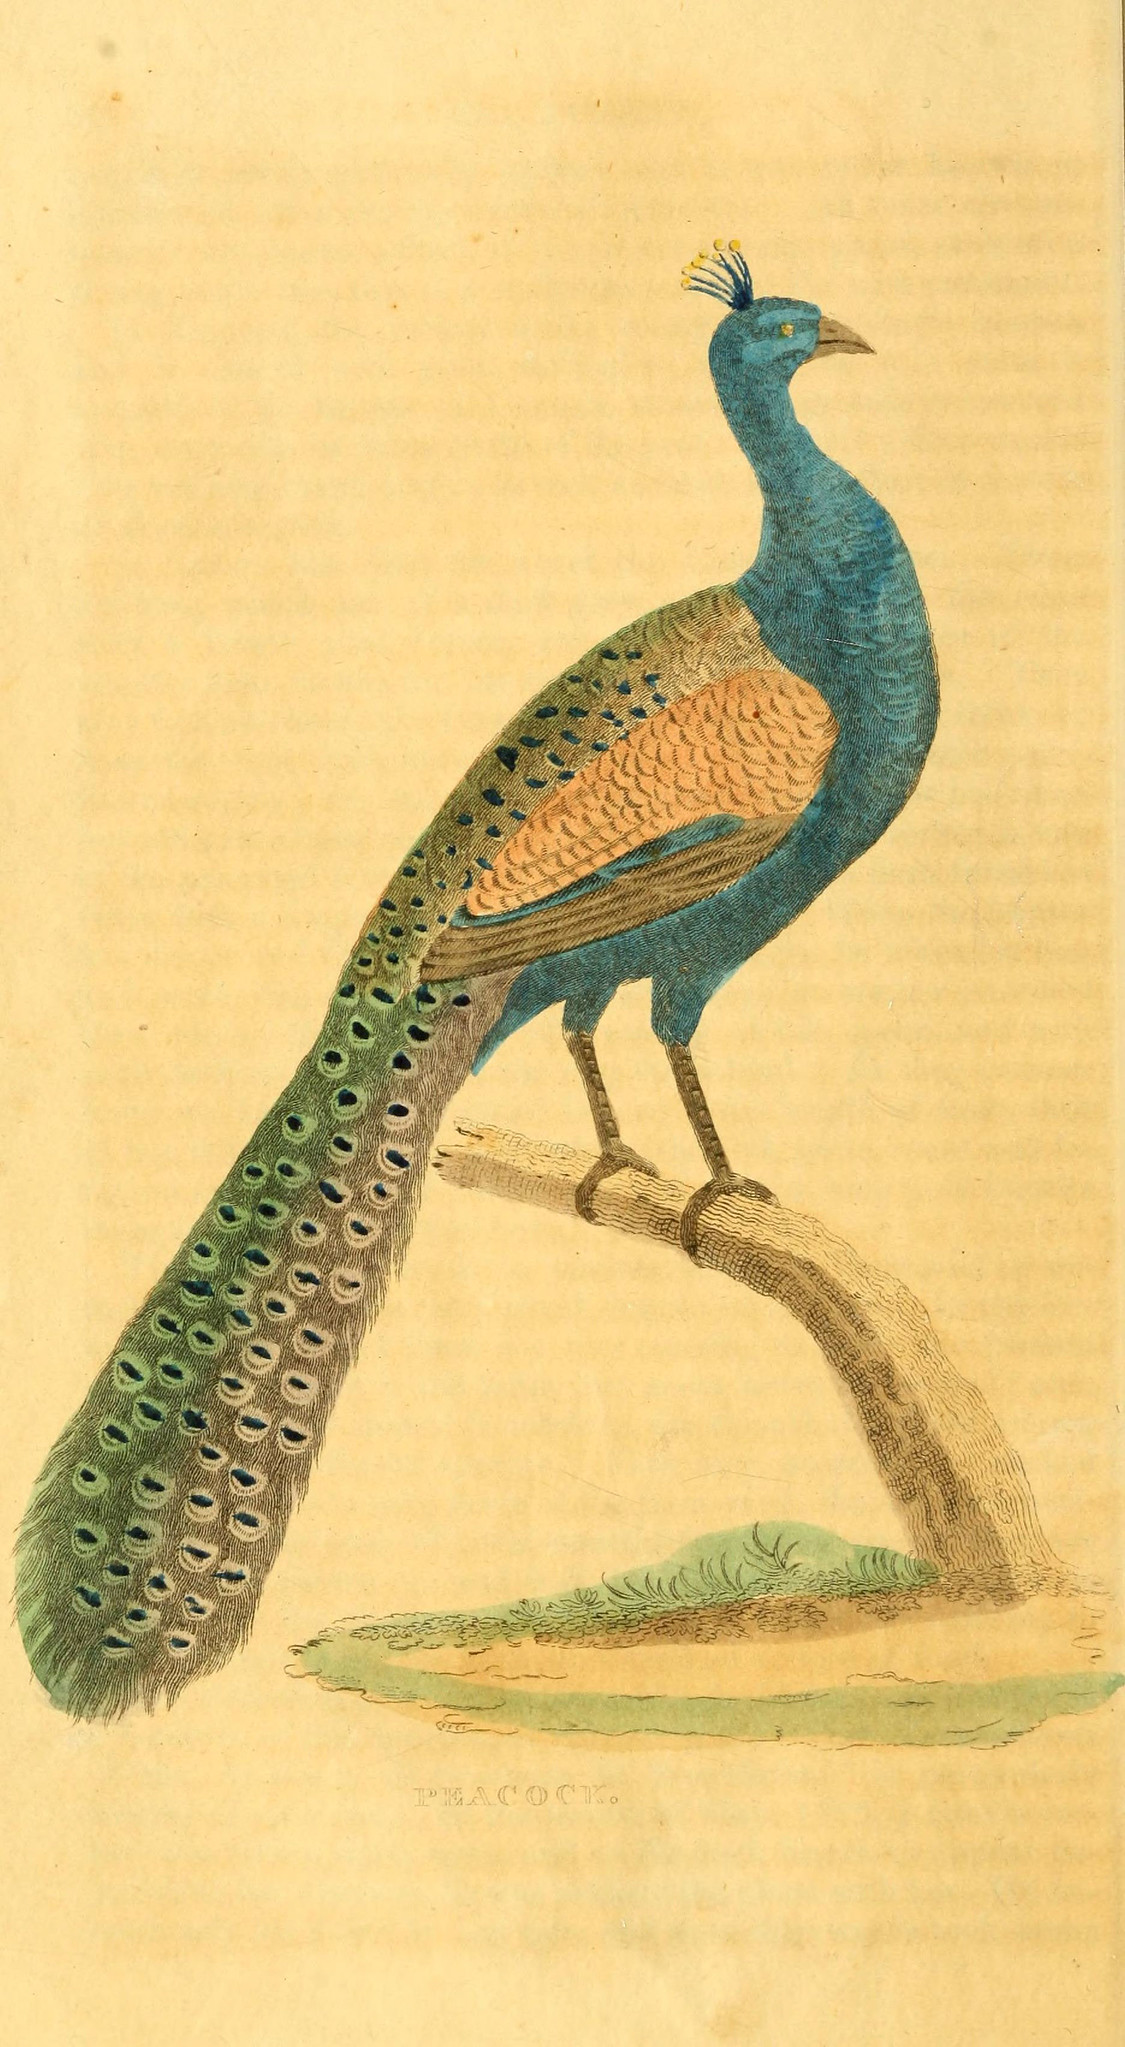 drawing of a blue bird with teal colored tail feathers standing on a branch